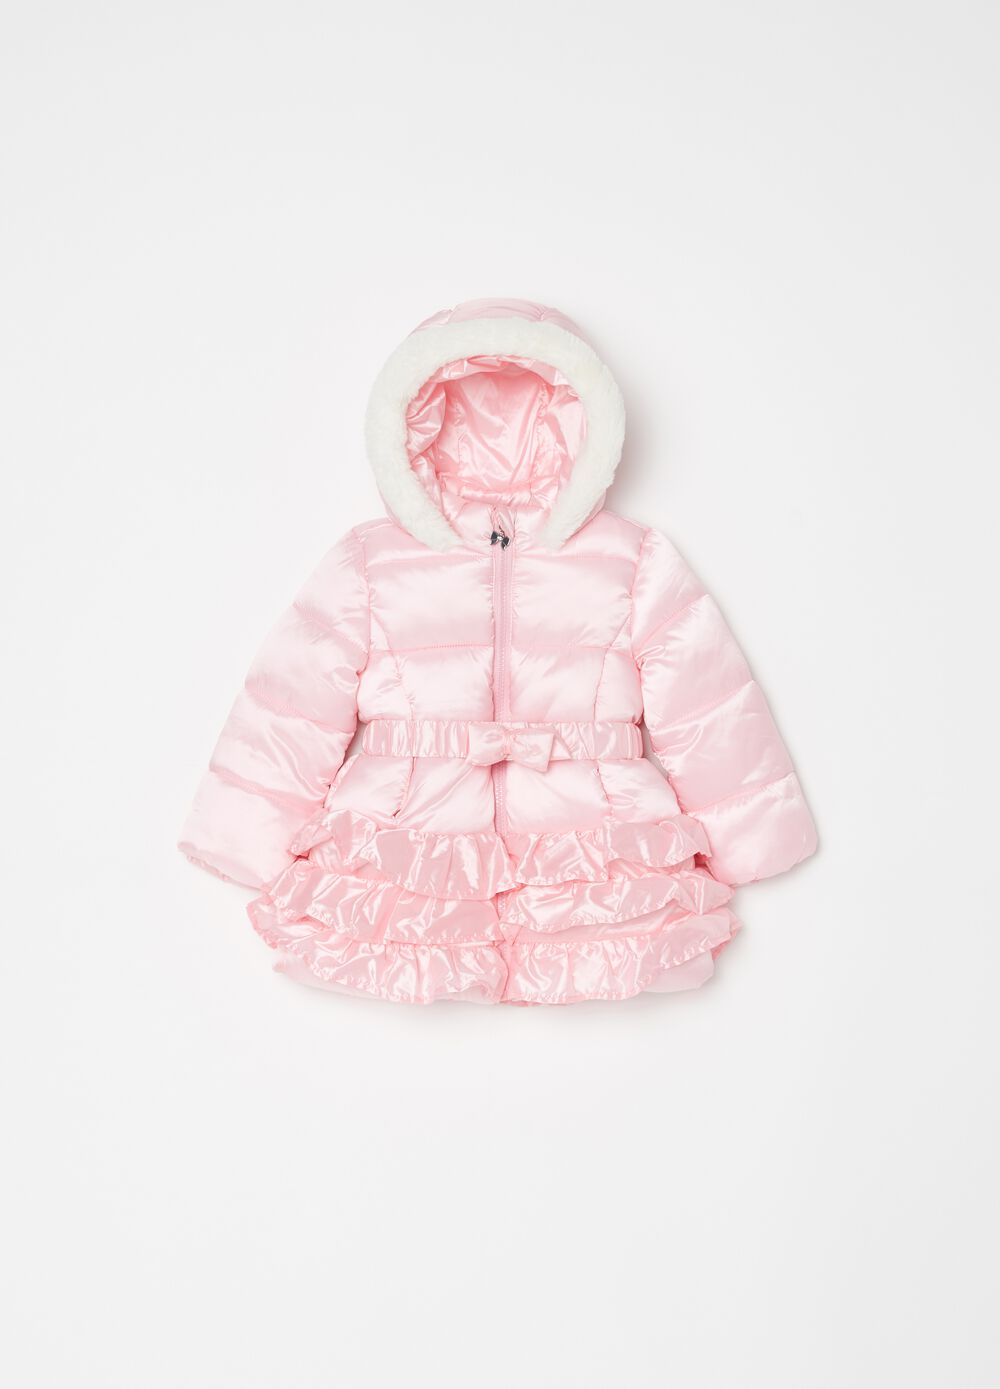 Padded and quilted jacket with flounces